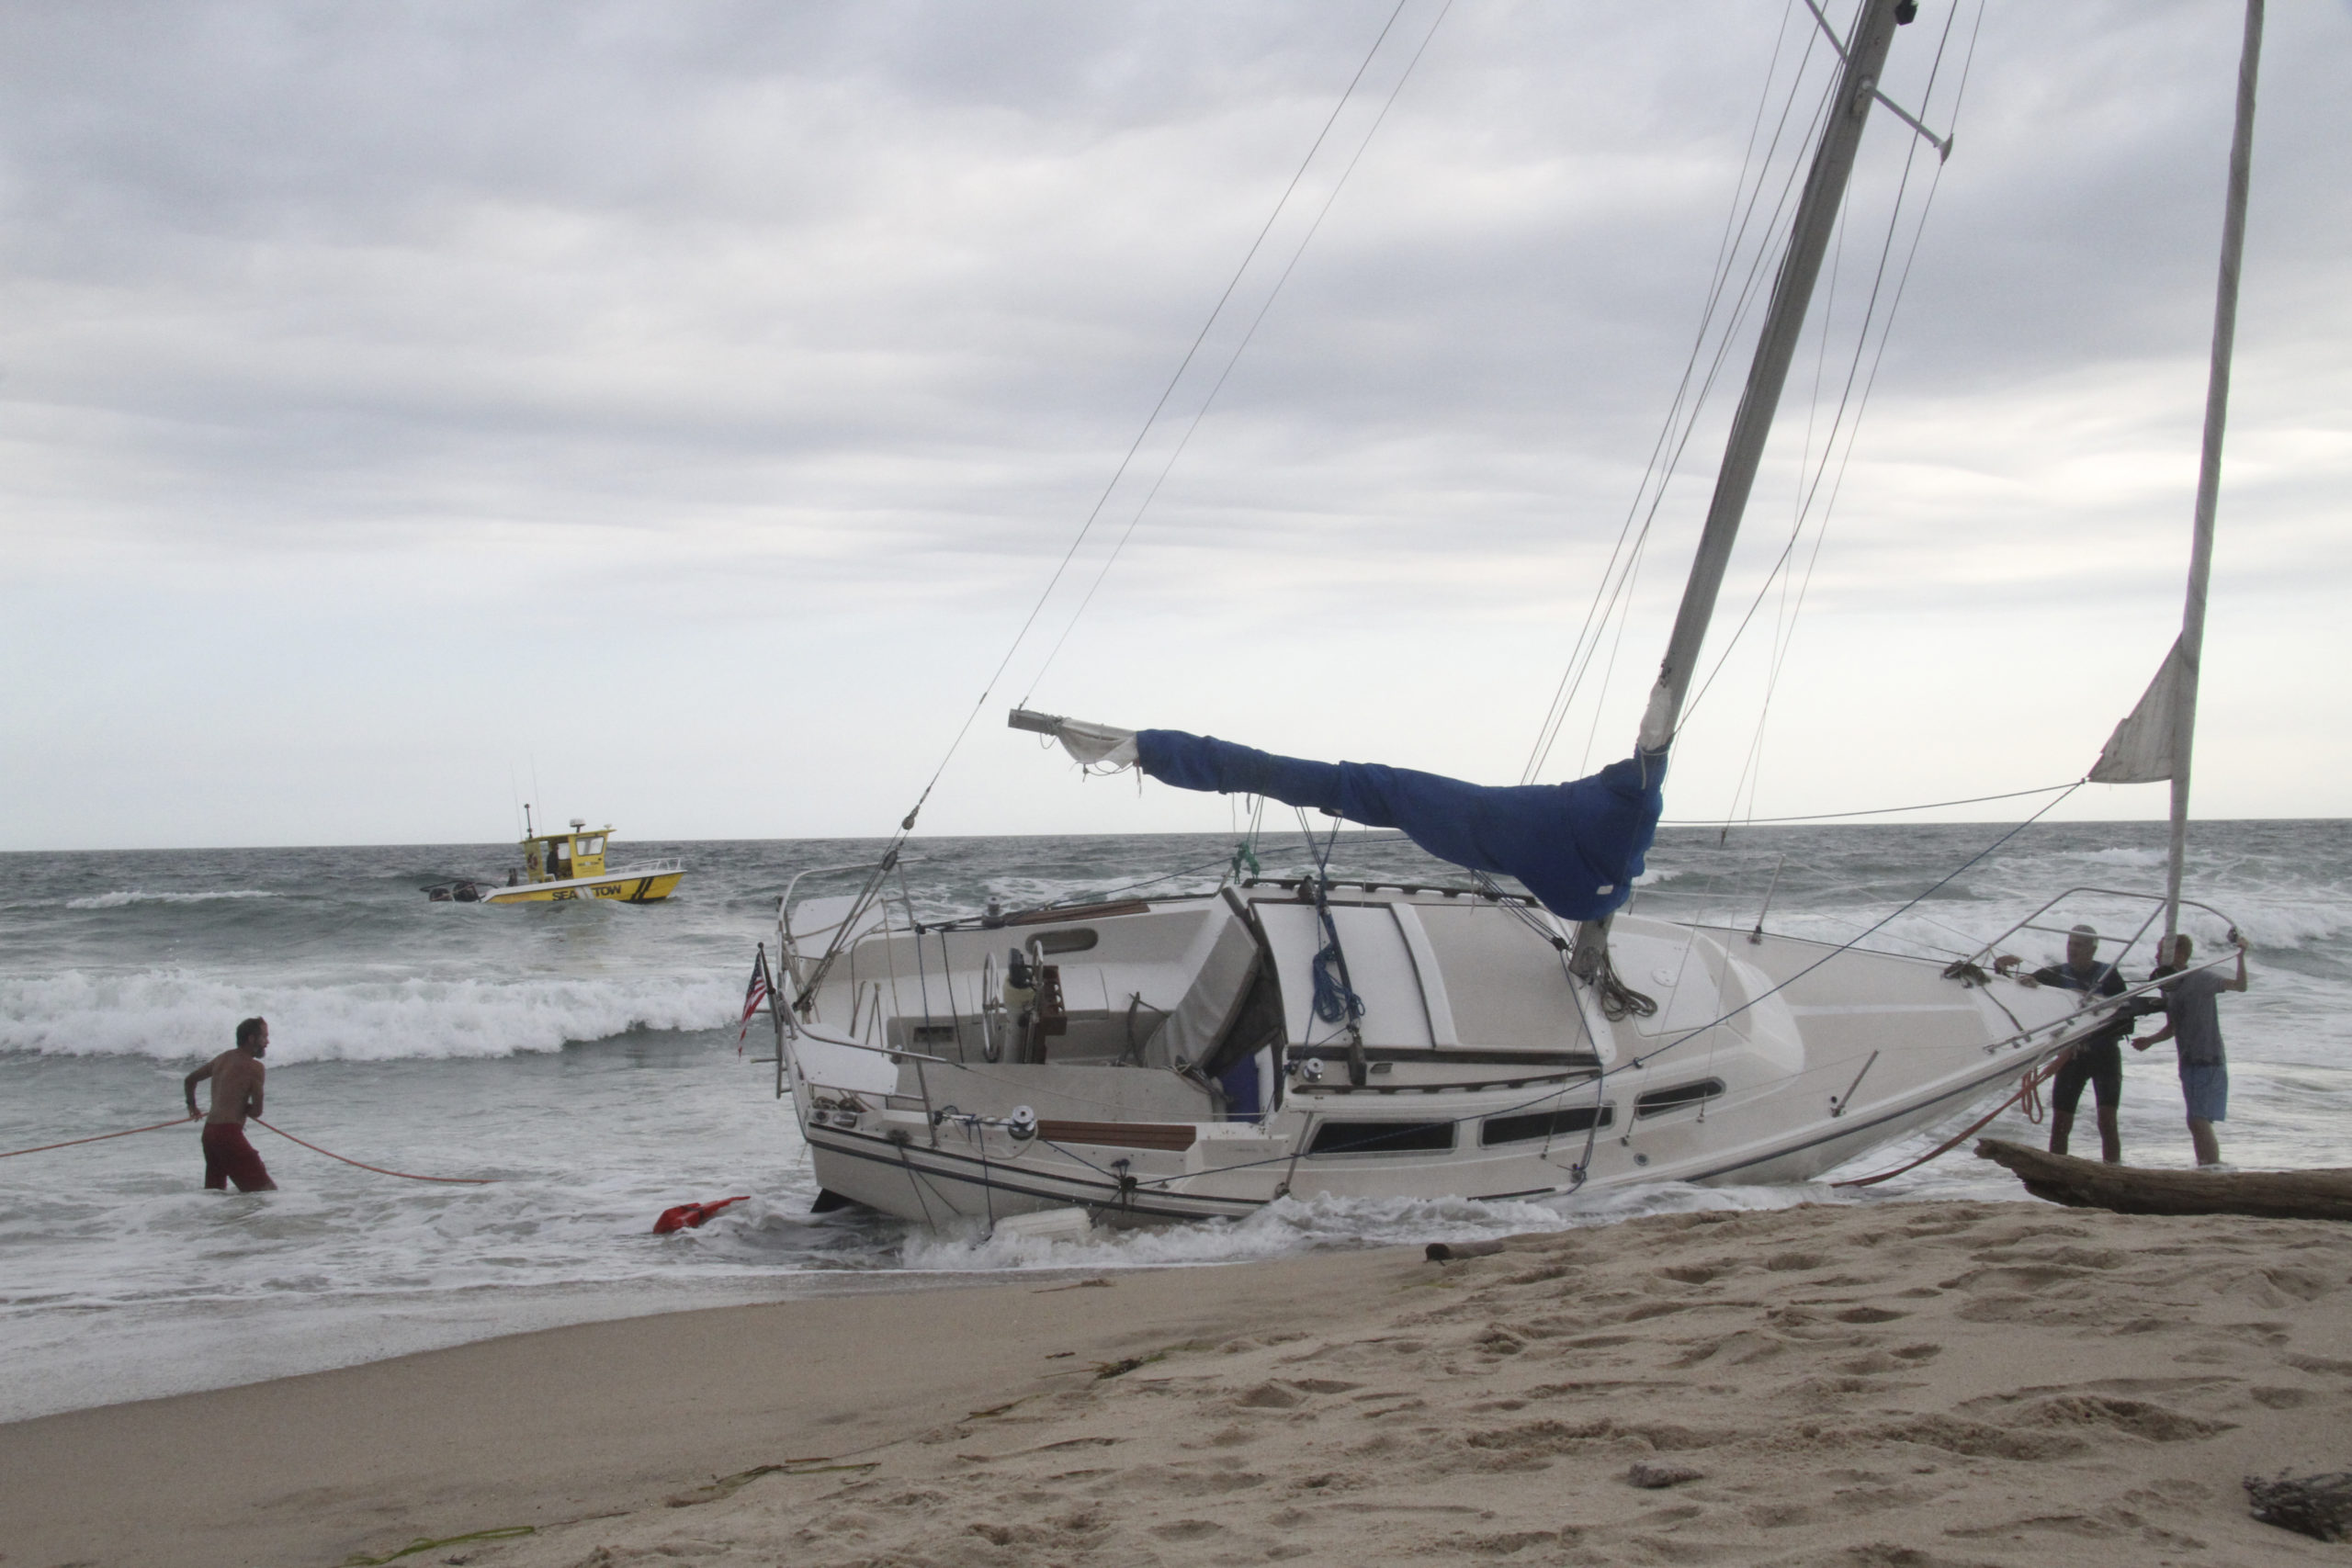 "The Vanna White Bounces Back, But Succumbs October 2 -- A 21-year-old from Arizona who was alone aboard a 26-foot sailboat when it beached near Shadmoor in Montauk had purchased the boat on eBay for $700 only a day earlier. He was on his first trip on the boat when the engine died. The sailboat, the Vanna White, was pulled off the beach by a SeaTow crew, with the help of some beachgoers, at about 4 p.m. on Thursday and towed to Montauk Harbor. But the hull, which had been battered by waves, gradually took on water during the slow journey back toward the Montauk docks. As the young owner, Matthew Hunt, watched his new purchase pulled through the surf a couple of hours earlier, he had said he was praying the boat would still be seaworthy — as he'd planned for it to be his new home. ""I flew out here on a one-way ticket with $1,000 in my pocket — $700 for the boat — so it's my only place to live,"" he said on the beach while waiting for SeaTow to arrive, his suitcase sitting in the sand next to him."